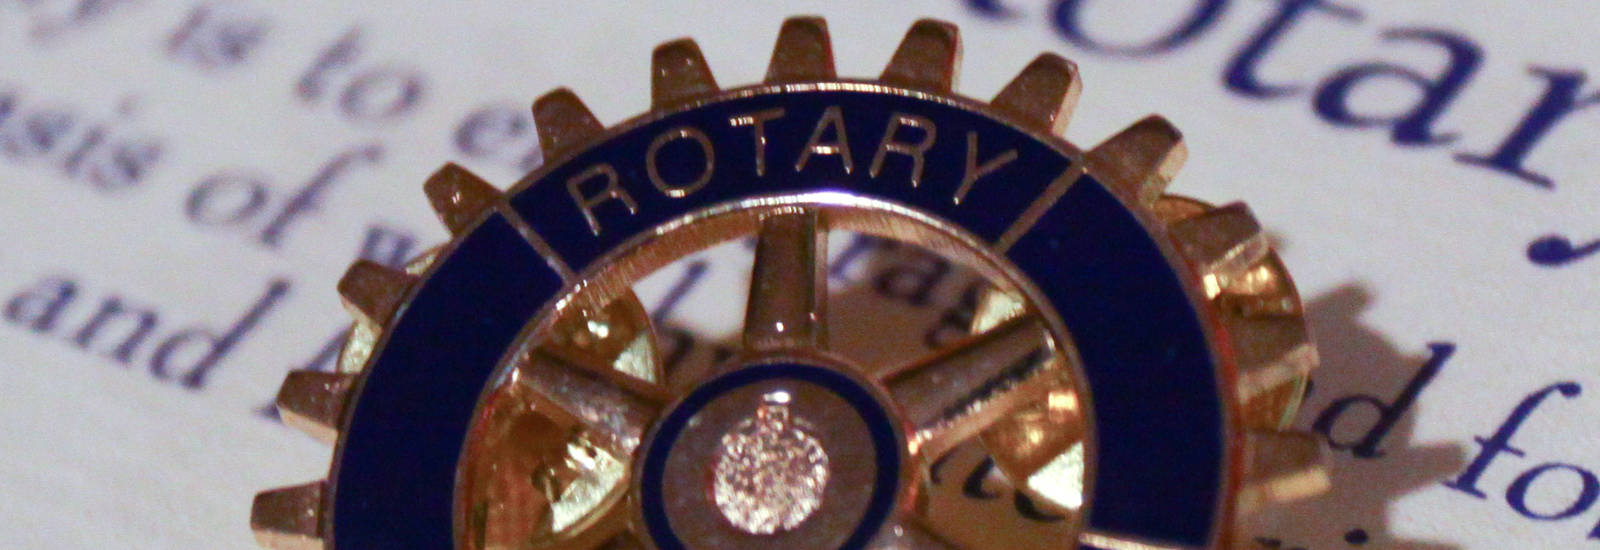 Rotary Club of Granville is part of Rotary International